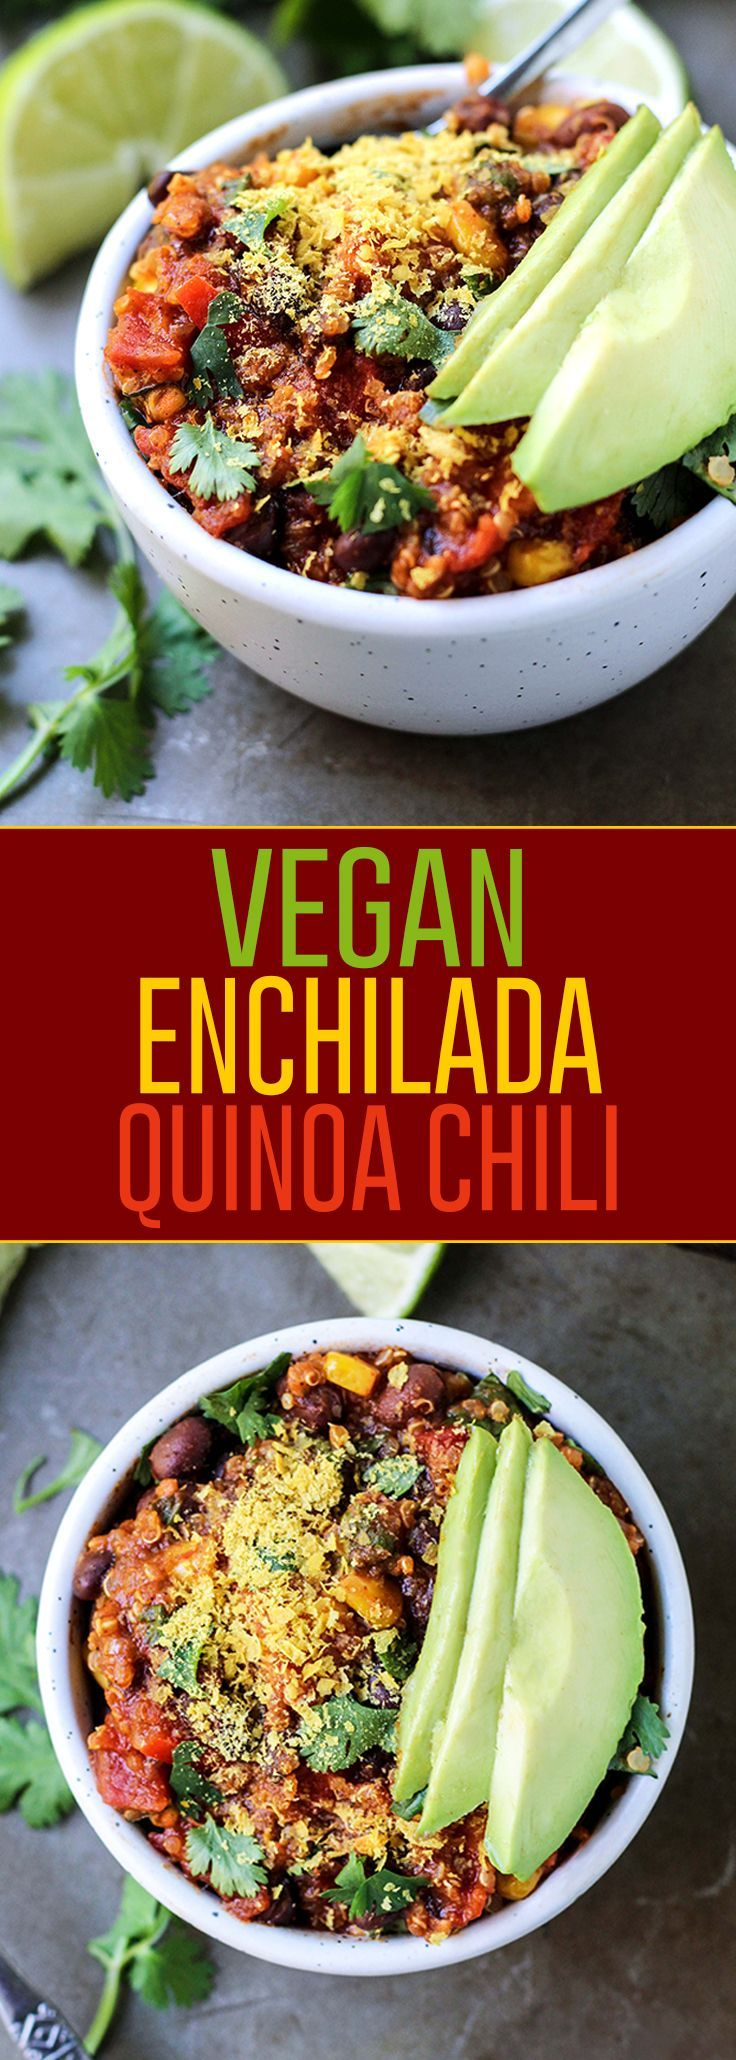 http://tipsalud.com Time to get out the slow cooker! You won't miss the meat in this thick and hearty vegan enchilada quinoa chili. Gluten-free!